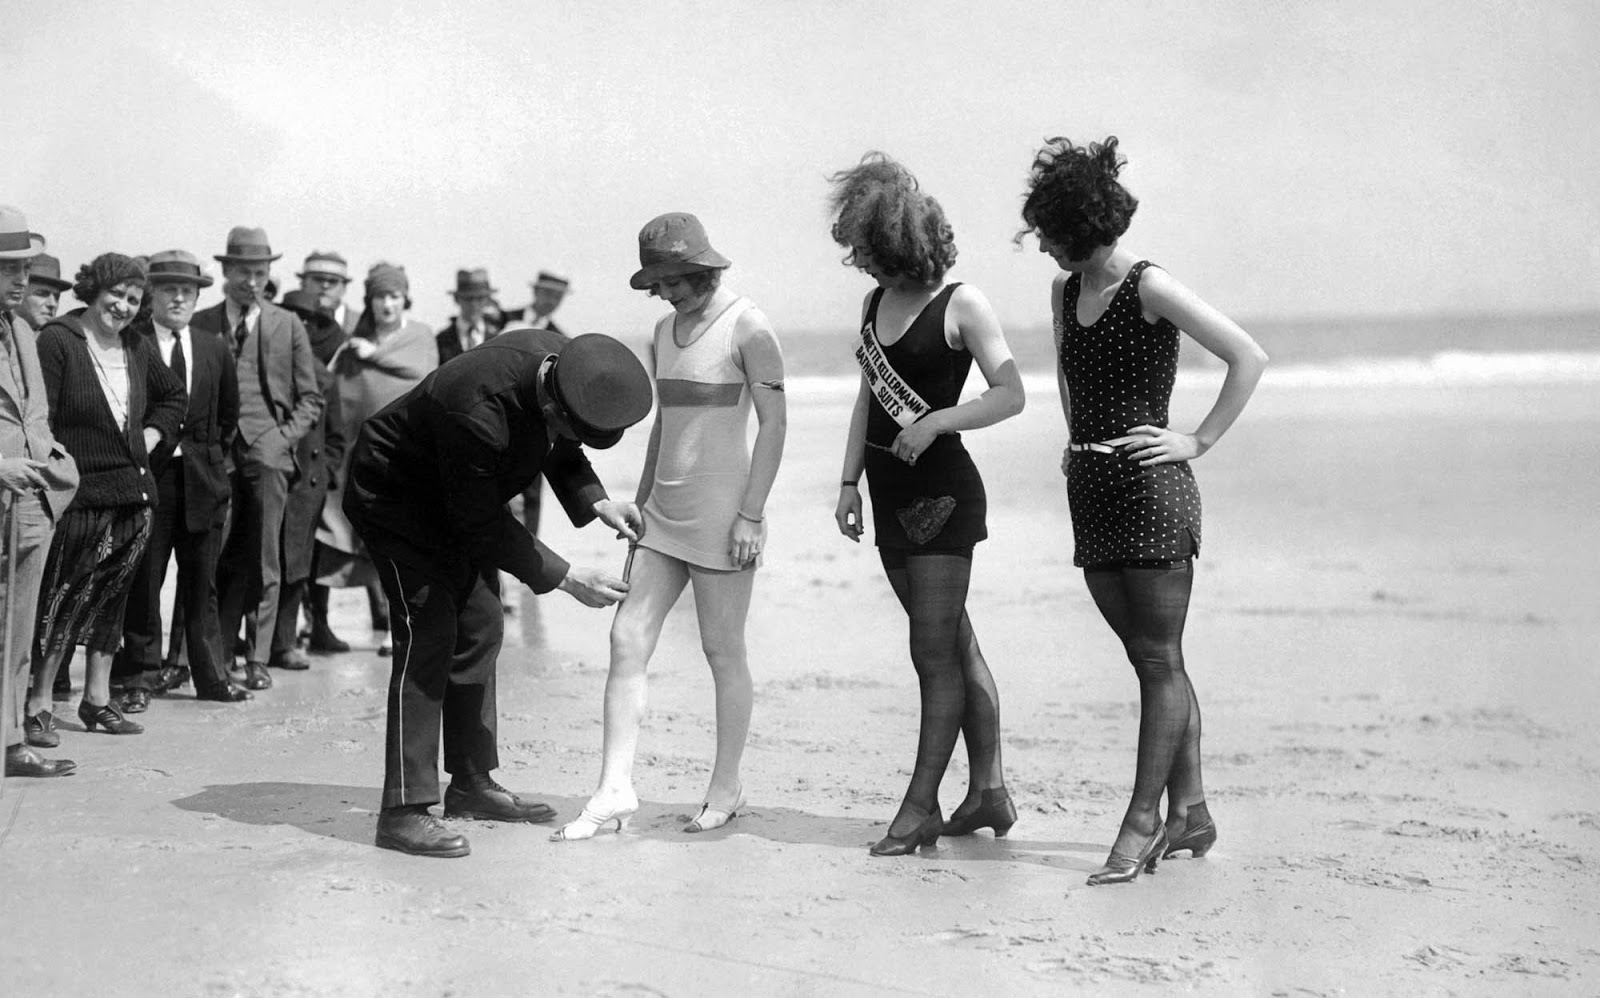 Women found to be breaking the rules were either asked to leave the beach or made to cover up.